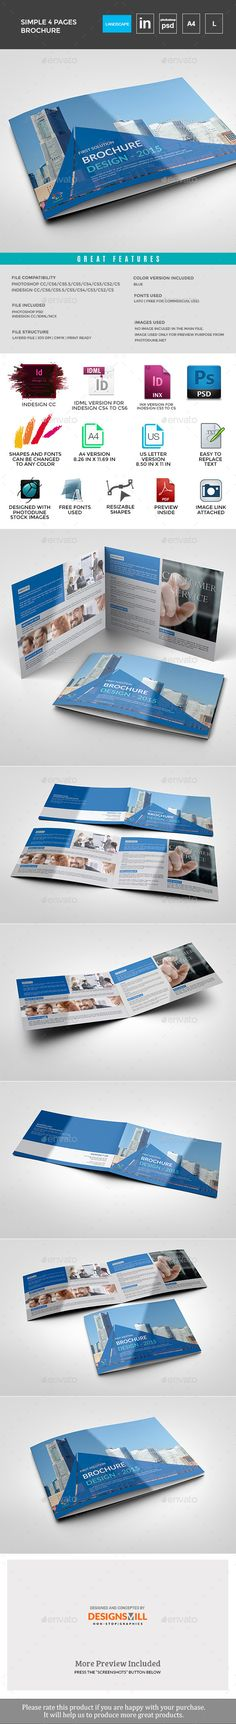 Brochure - Corporate Brochures Photoshop and InDesign File with Properly organized layers Compatible with Indesign CC, CS6, CS5.5, CS5, CS4,Cs3 and Photoshop any CS Versions Fully Editable File A4 Size and US Letter Size Included Print Ready Files PDF Preview File InCluded Image can be easily replaced with own images and edit Very easy to edit and change Easy to add pages without loss of quality or layout Free fonts link Included Photos html links included Change colour easily with just 1…